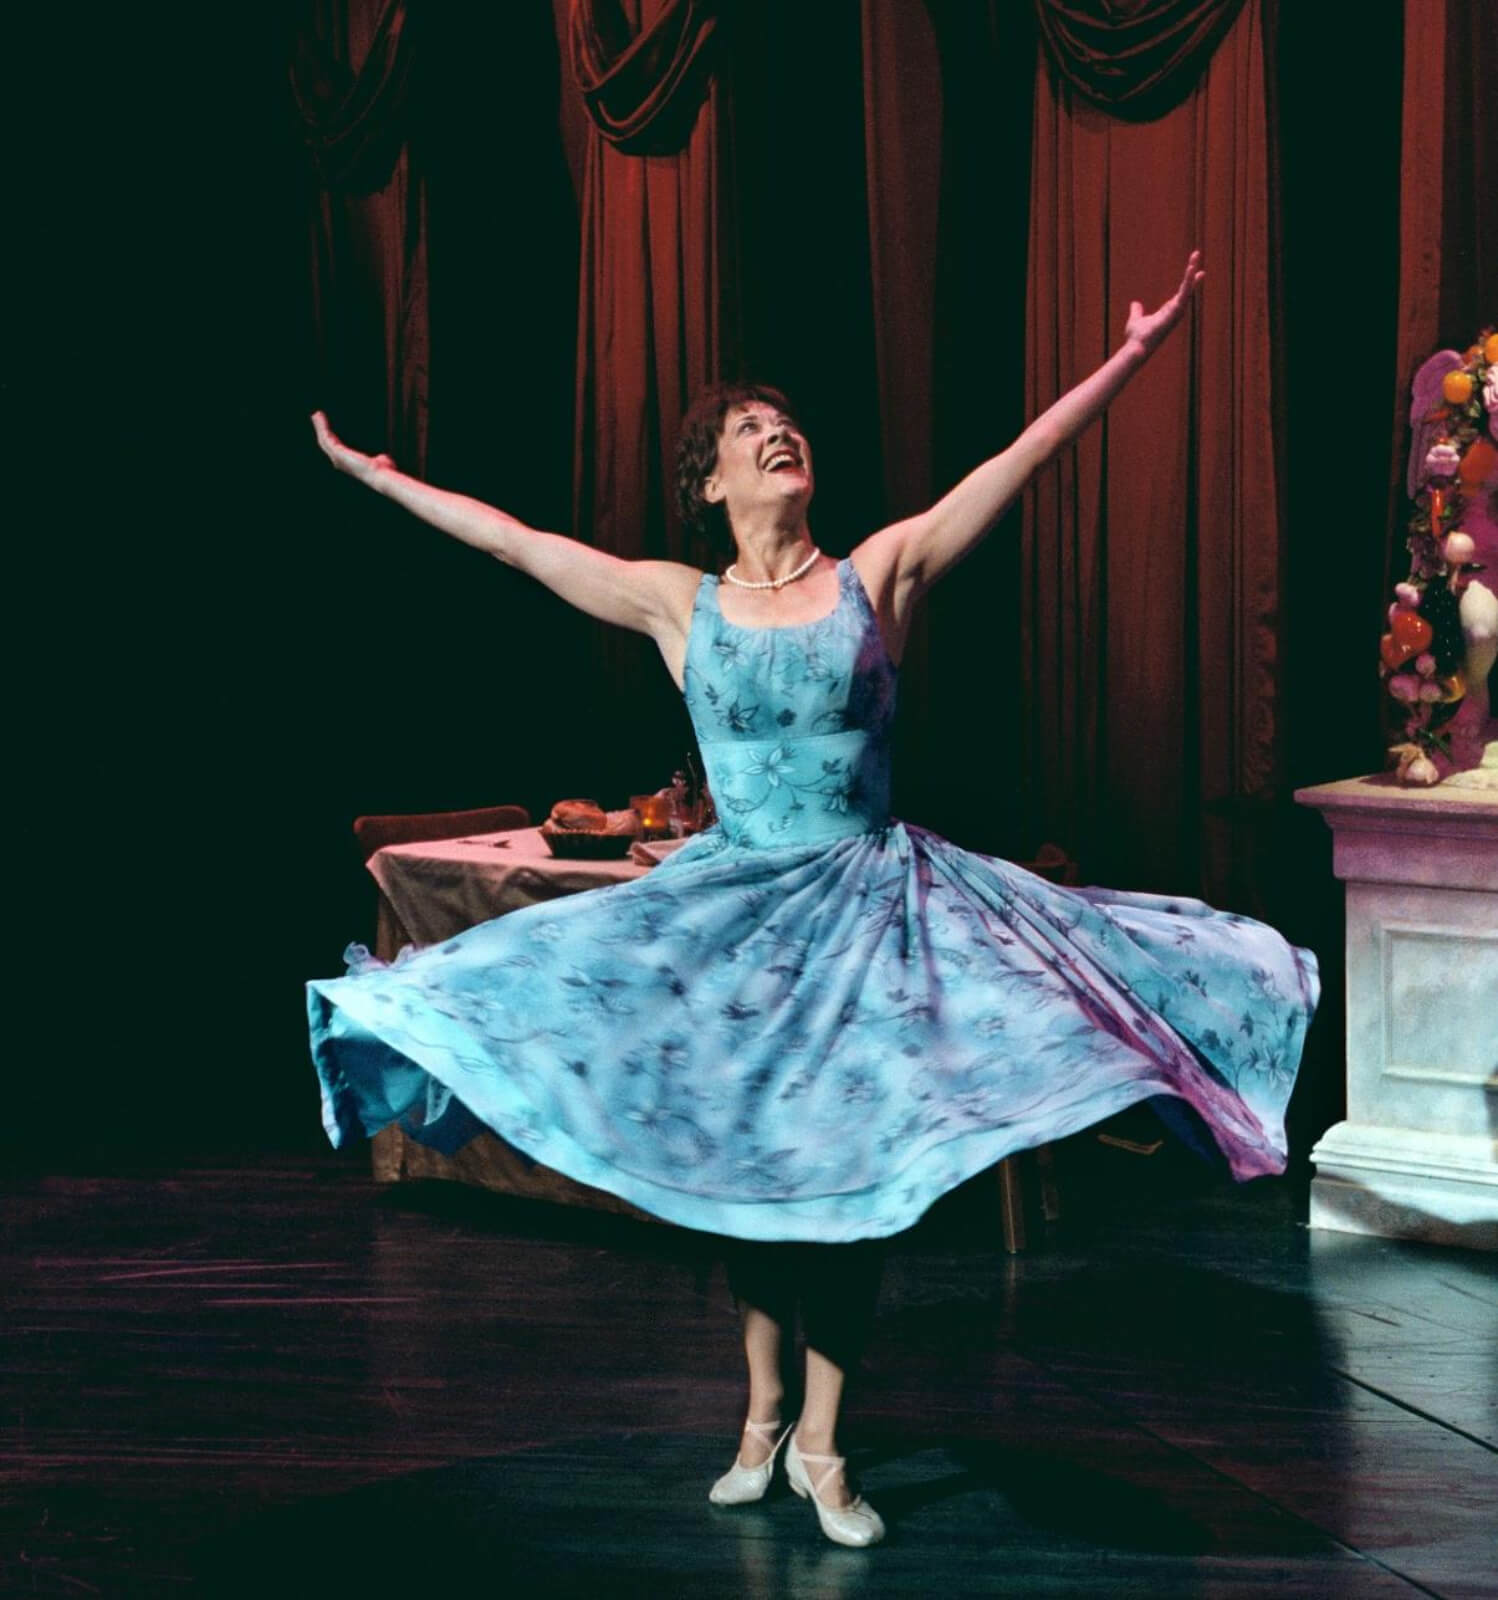 Wife (Karen Ziemba) twirling with her arms up in a restaurant. She is wearing a beautiful blue dress in Contact.